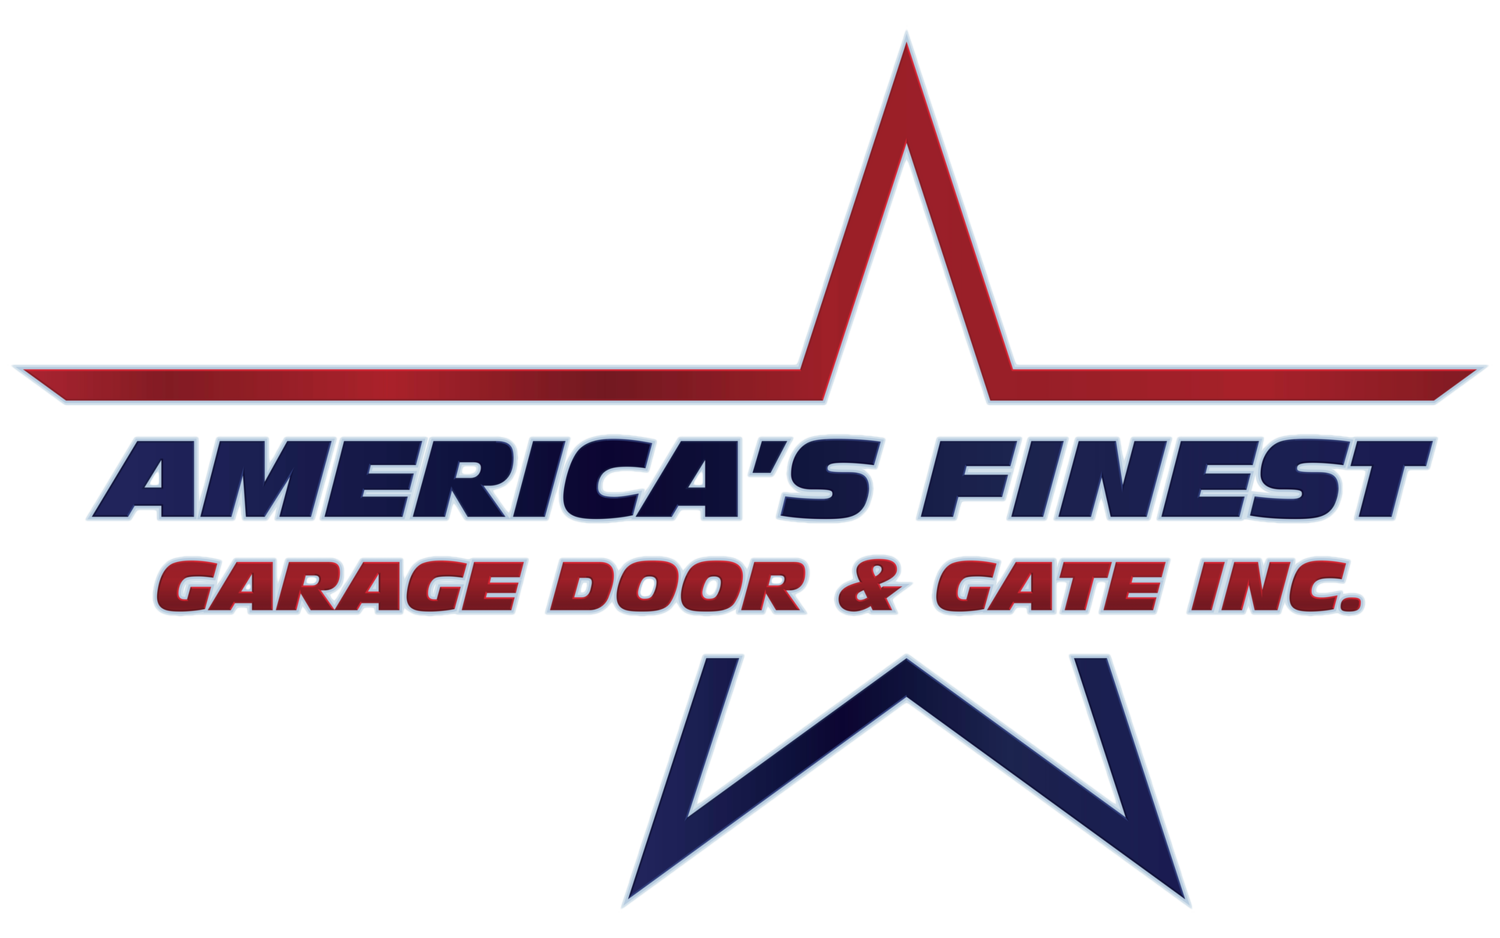 America's Finest Garage Door & Gate, Inc